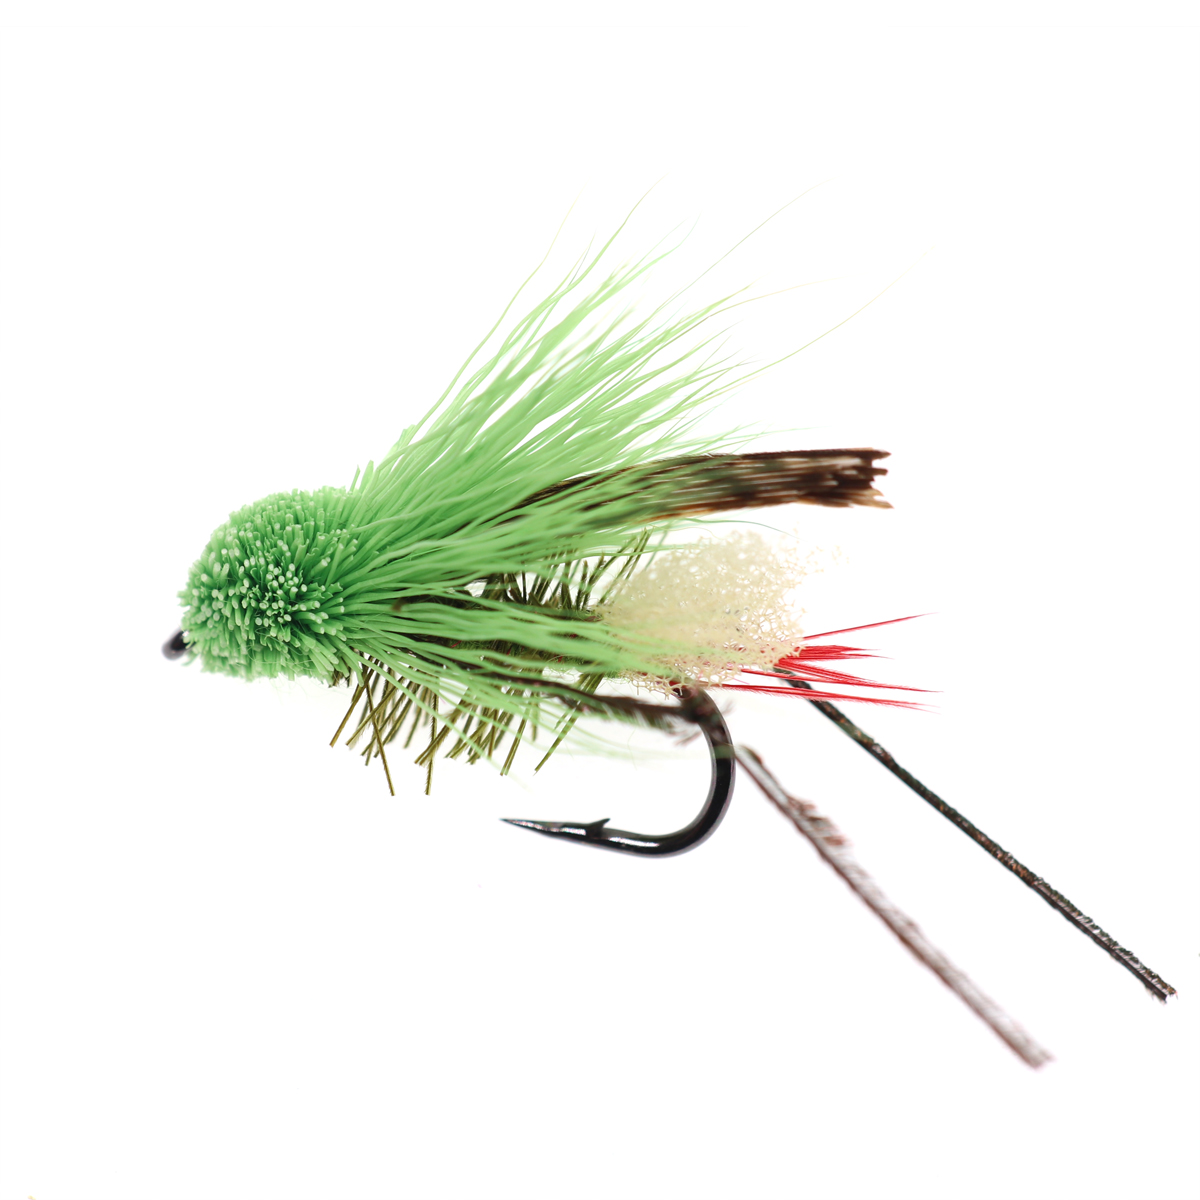 5PCS #10 Trout Fishing Fly Grass Hopper Fly terrestrial Hopper Fly Floating Bass Crappie Bug Bait Artificial Lure 15